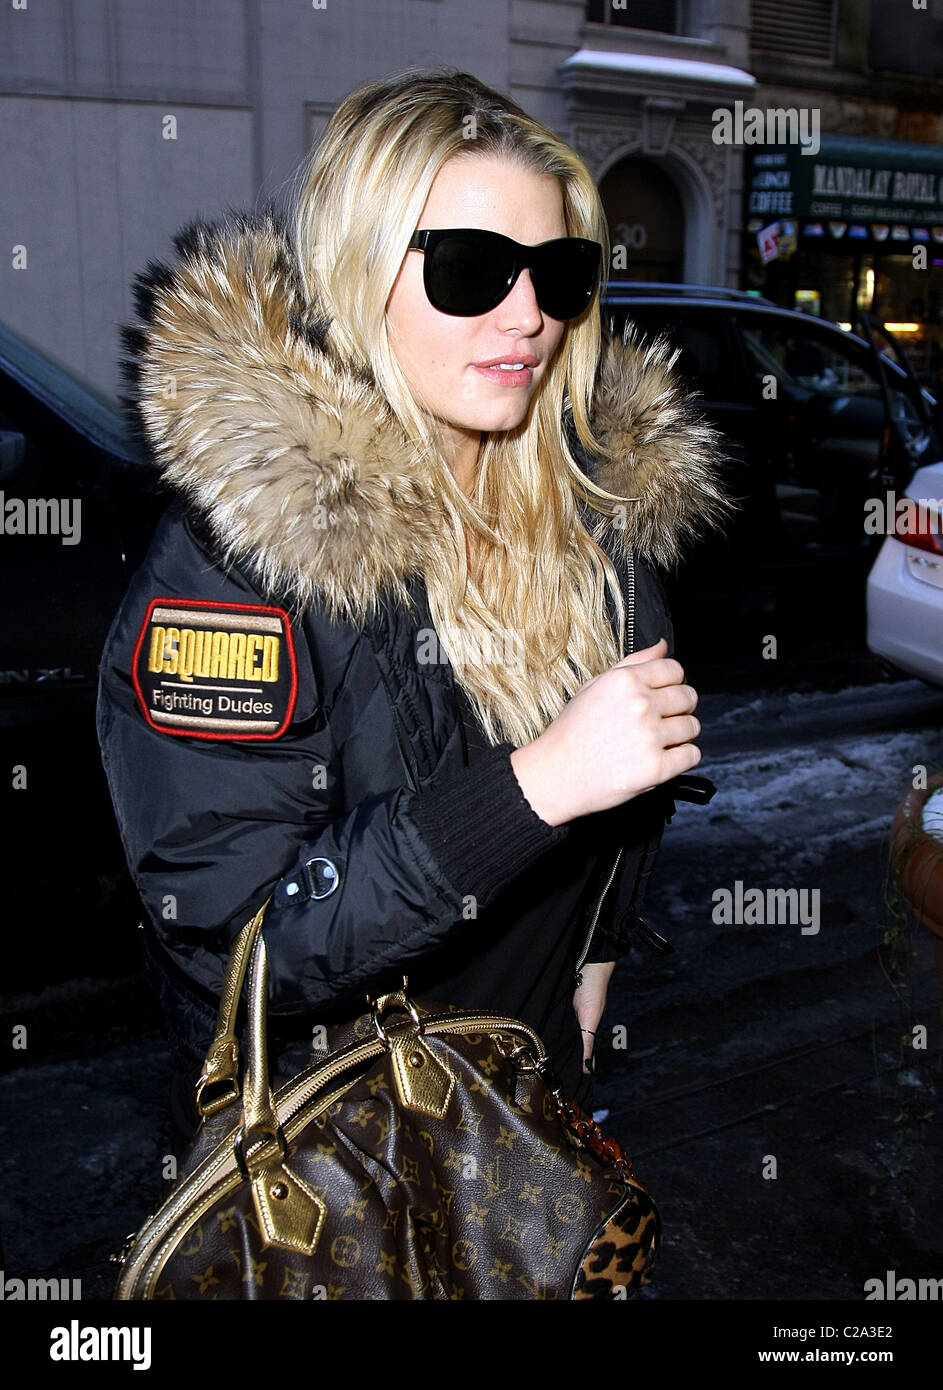 d7155af8ec3a Jessica Simpson sporting a Louis Vuitton handbag, goes to visit her sister  Ashlee in her apartment New York City, USA -